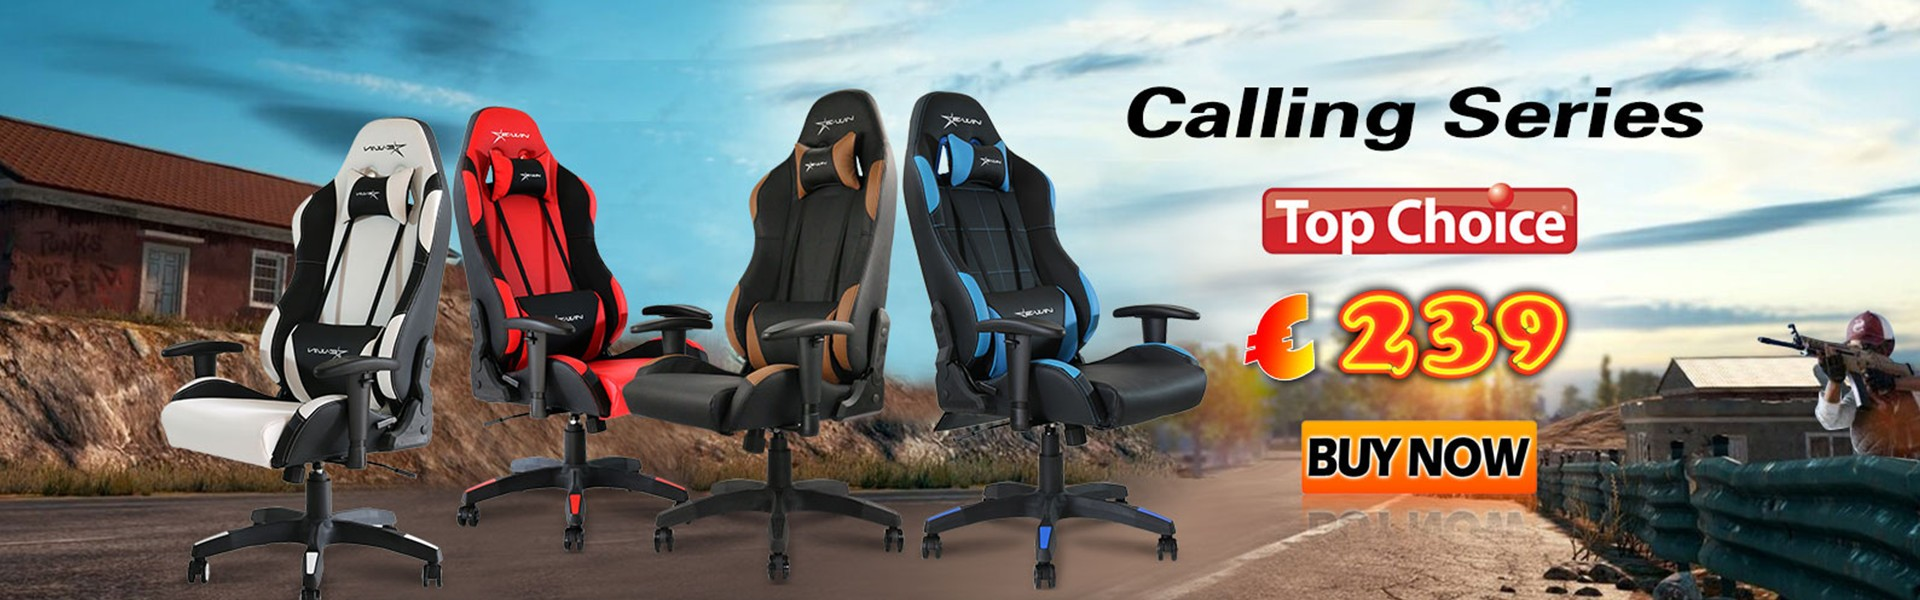 EWIN Europe Calling Series Gaming Chairs!